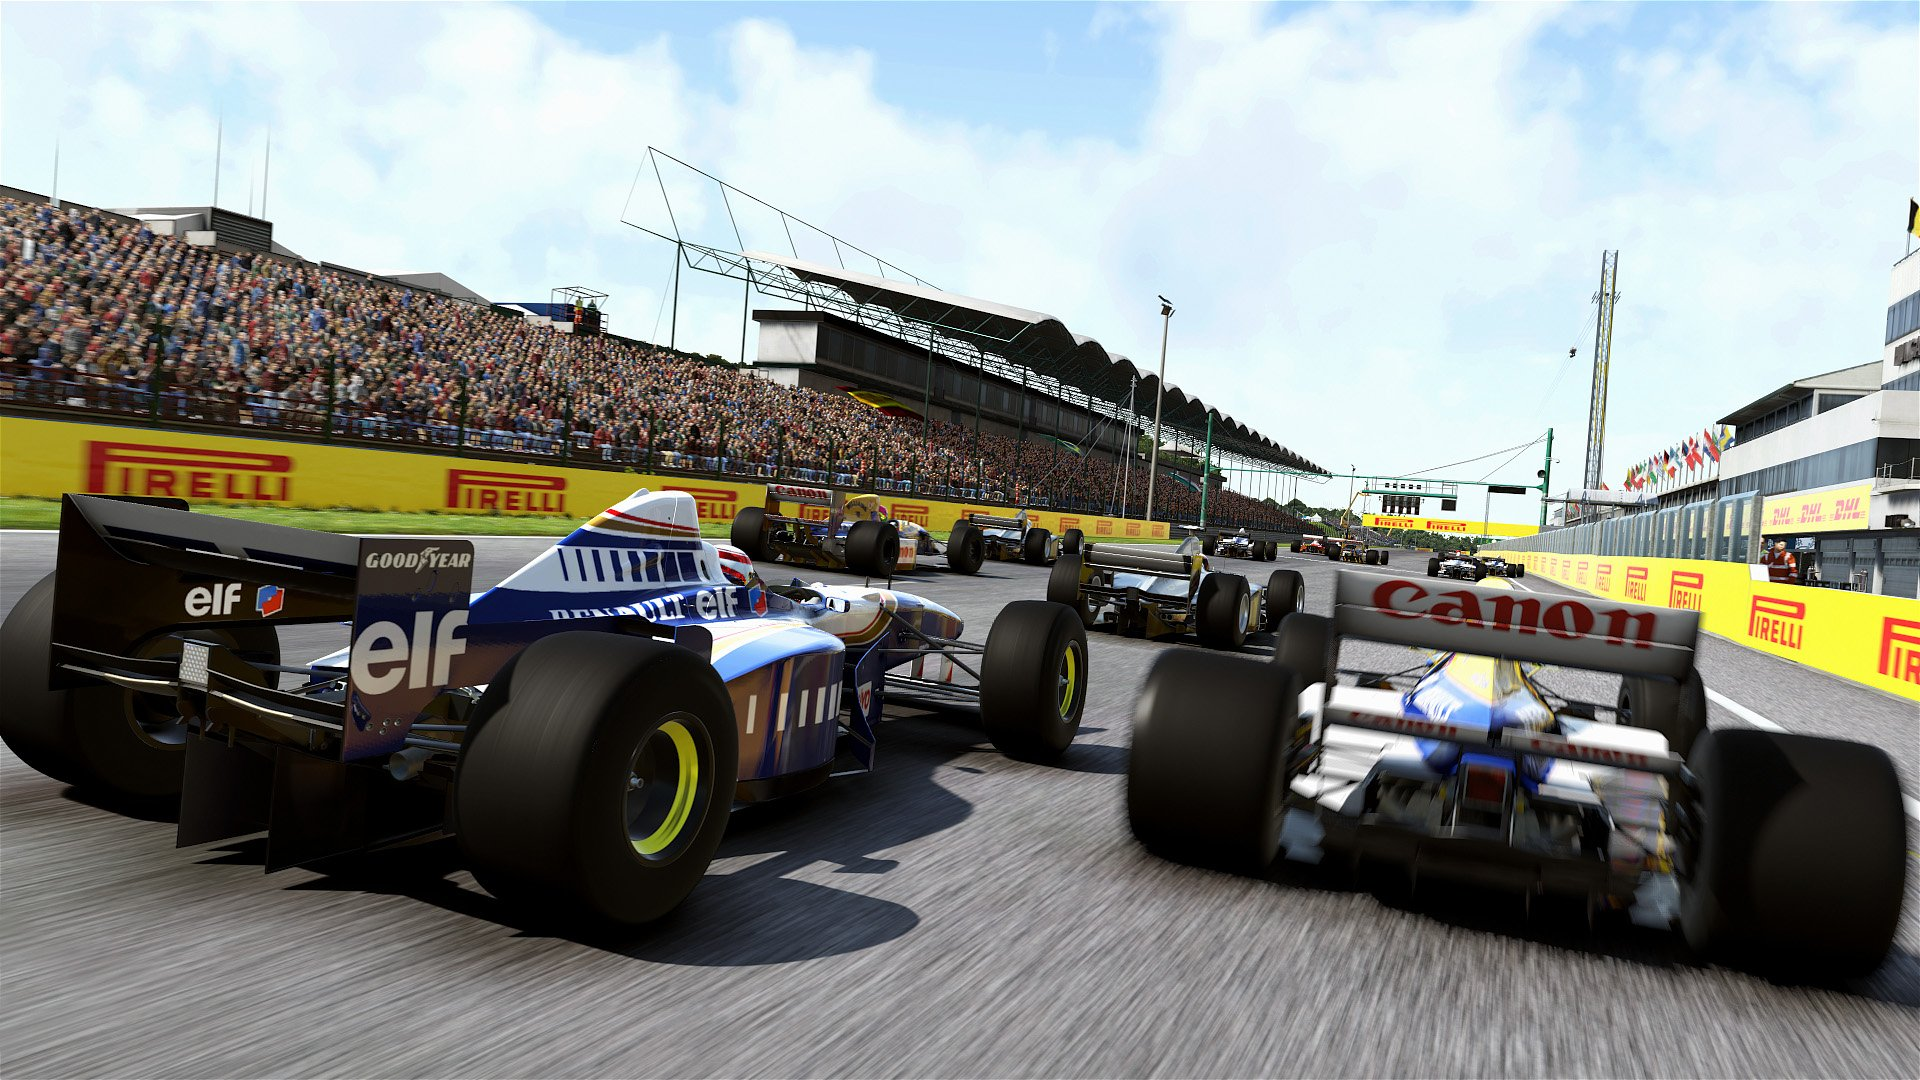 Another new platform for @Codemasters #f12017 - released today to Mac OS! #simracing #F1  https://t.co/4uglDKek6T https://t.co/9FsQU7TZpB